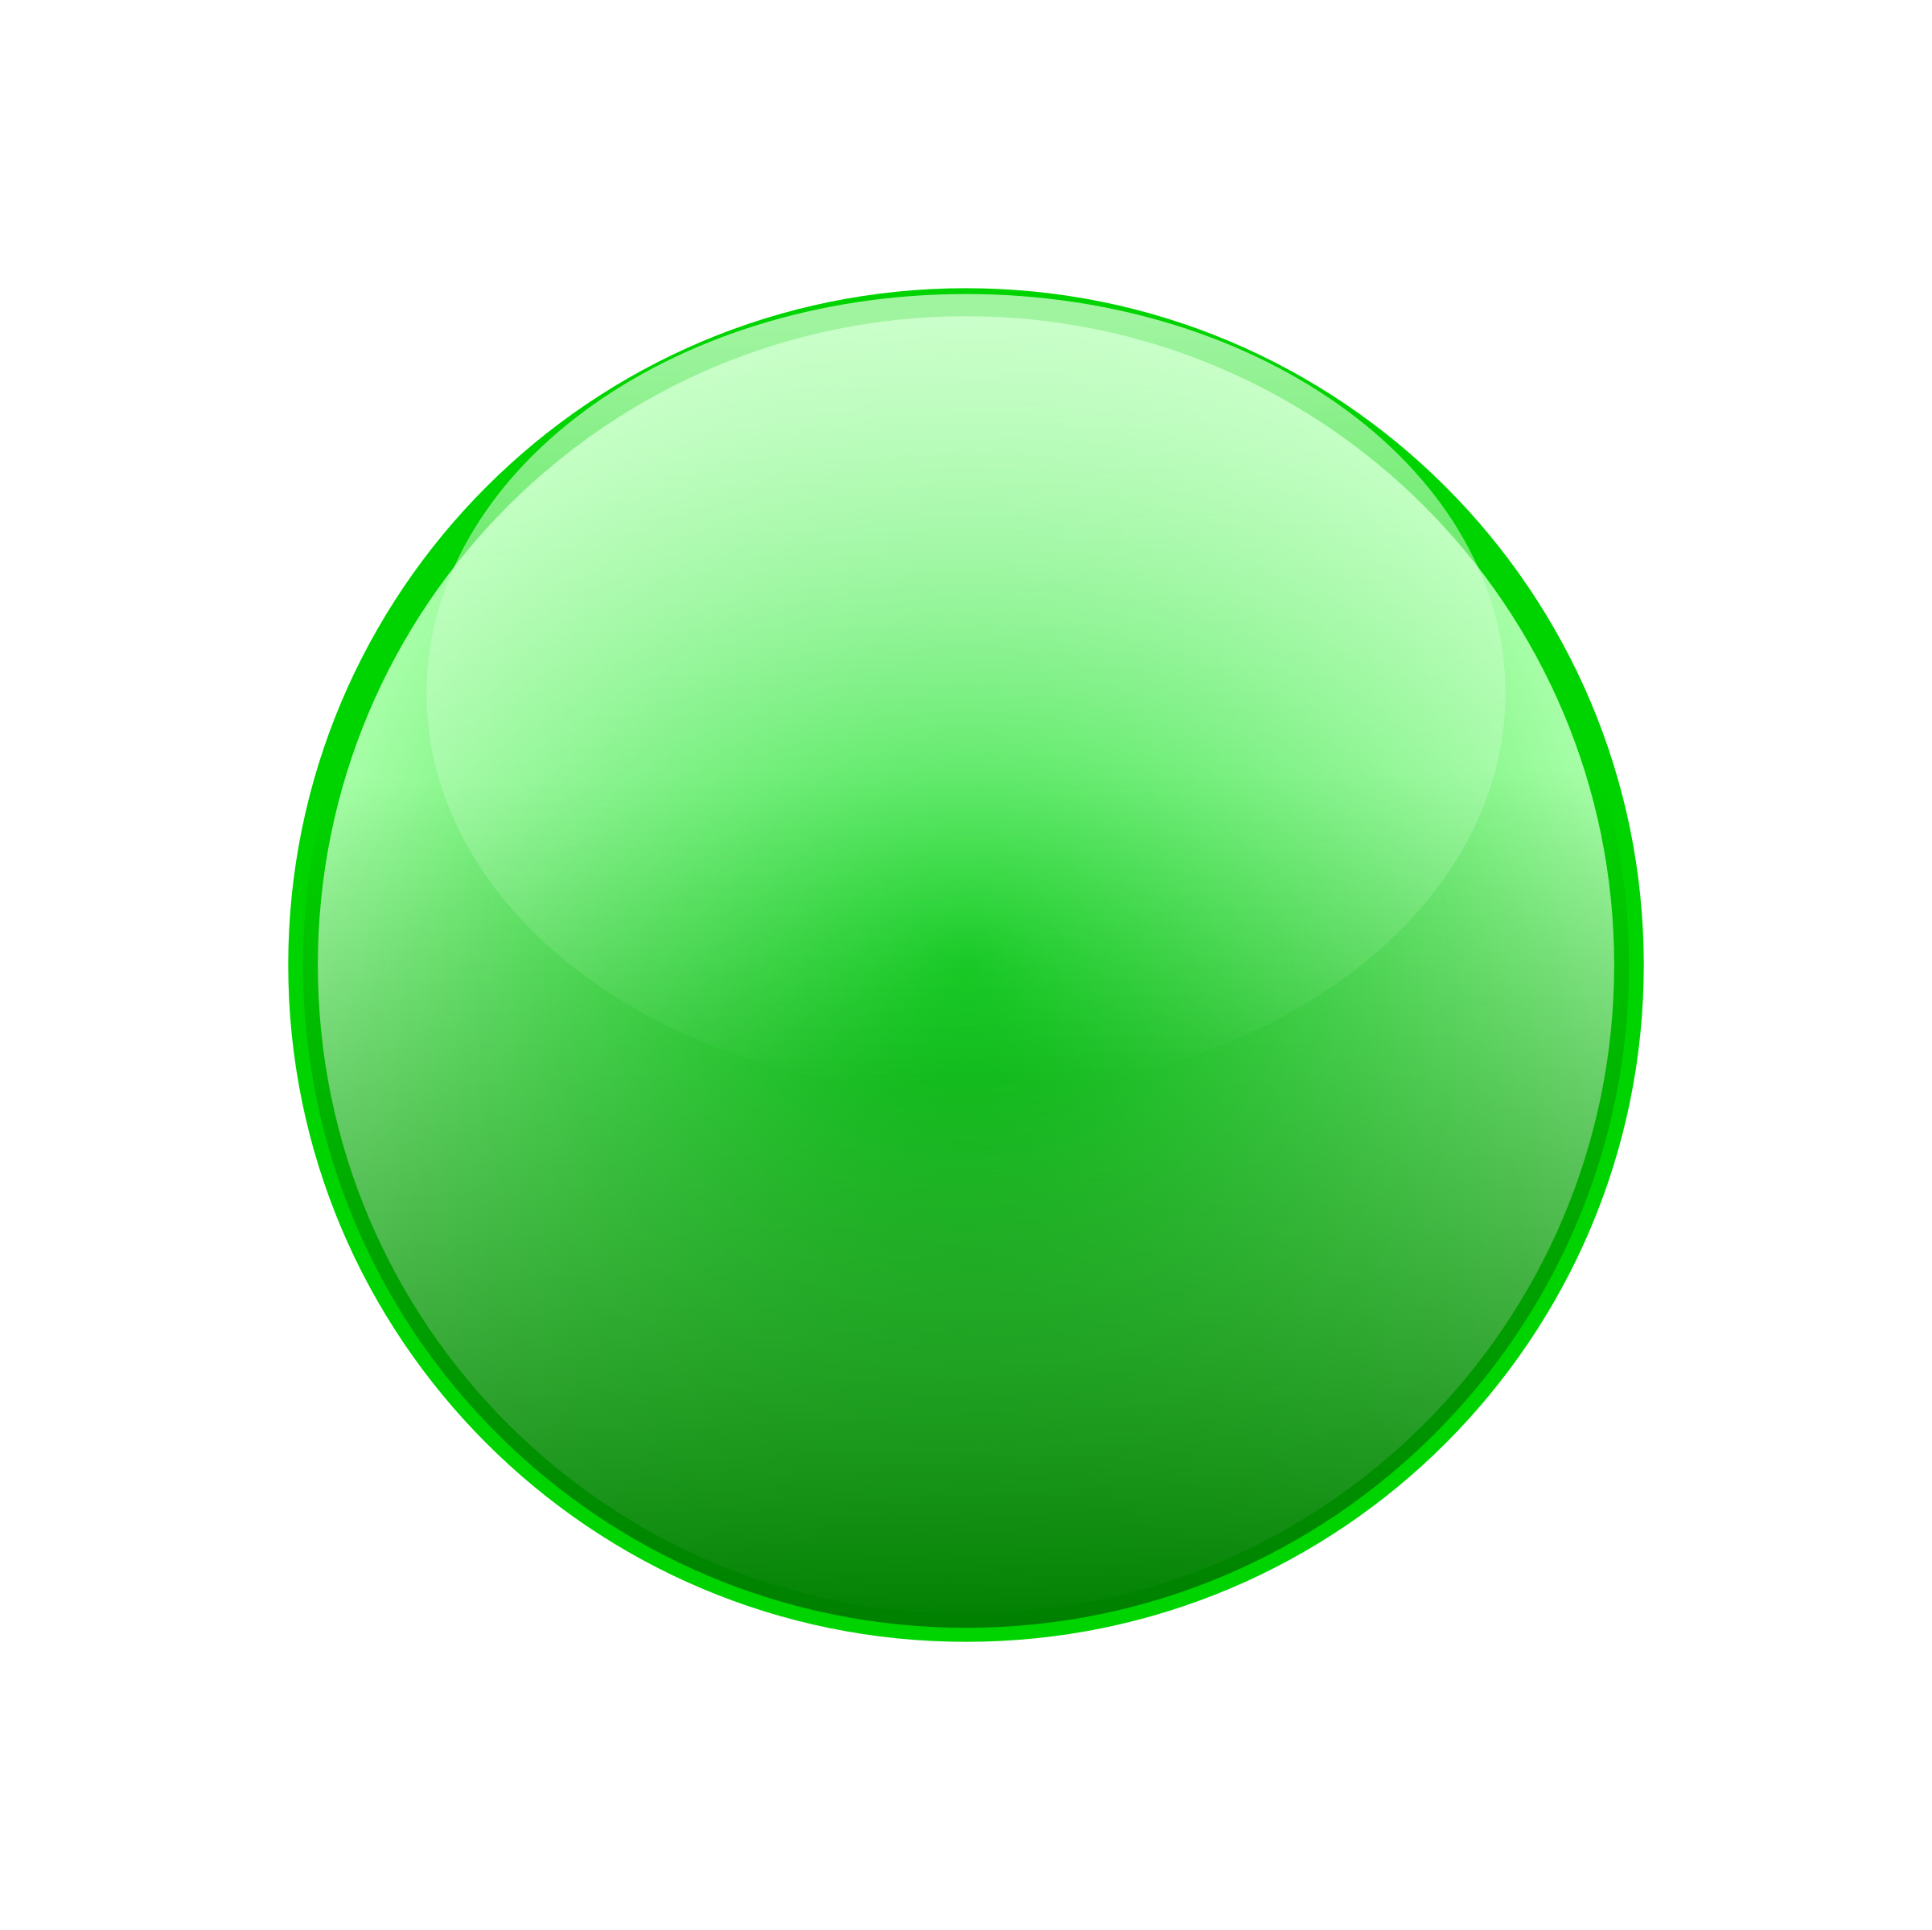 green ball by alexgill